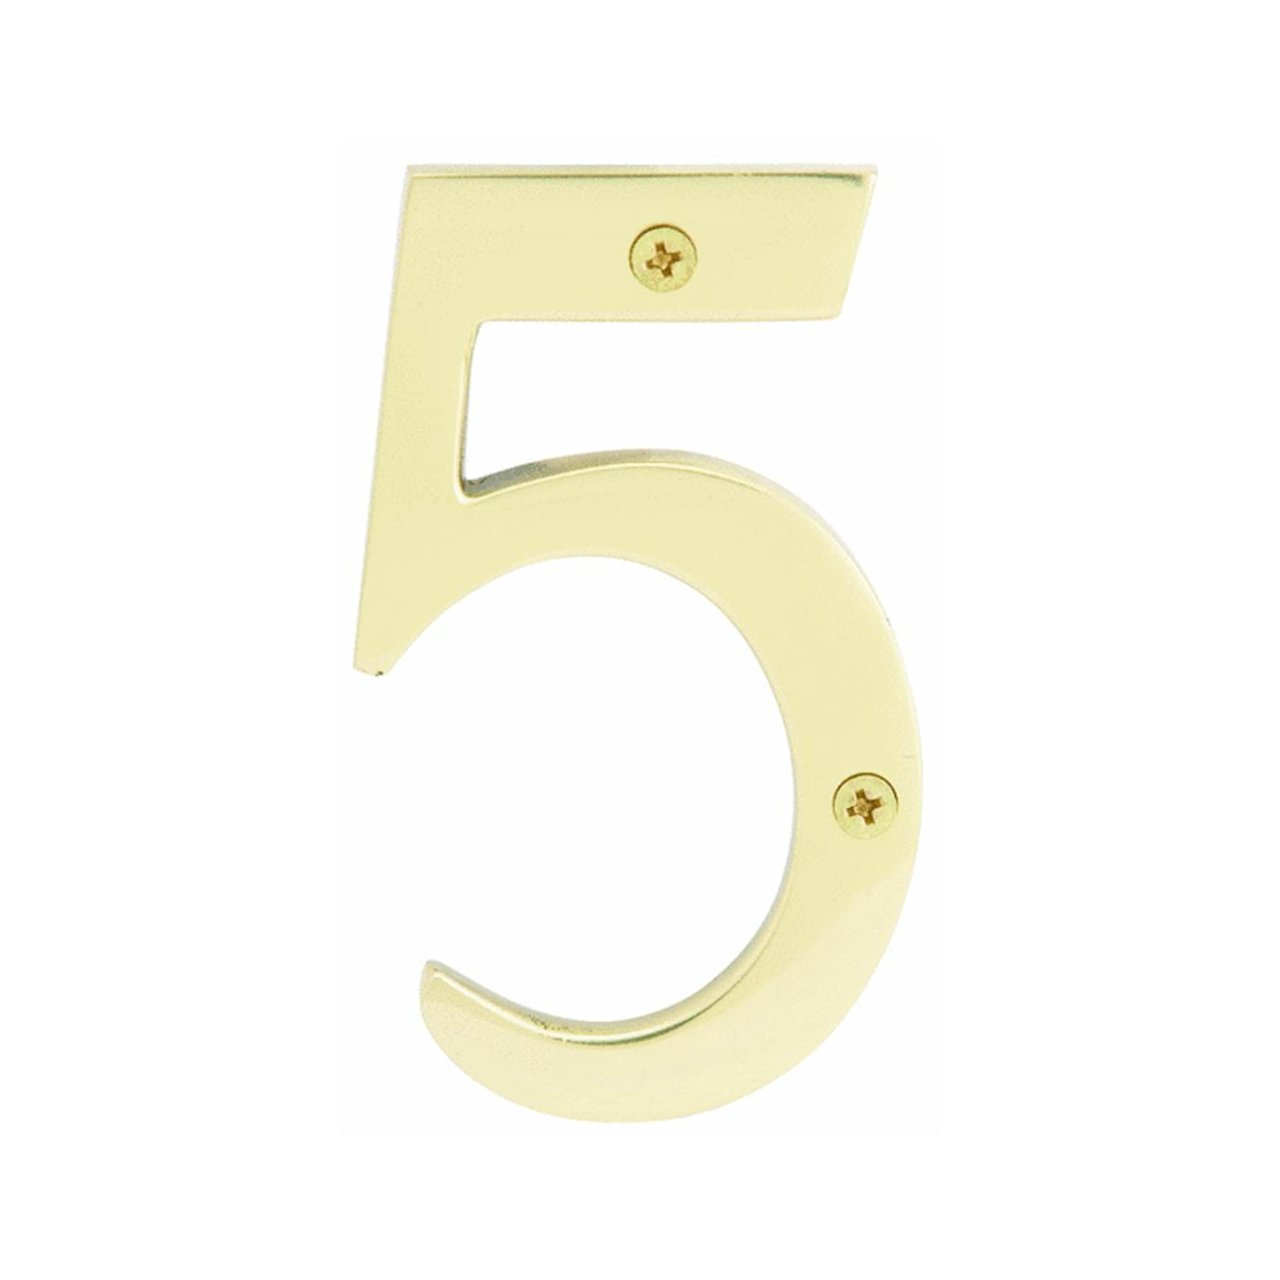 4 Solid Brass 3-D House Numbers